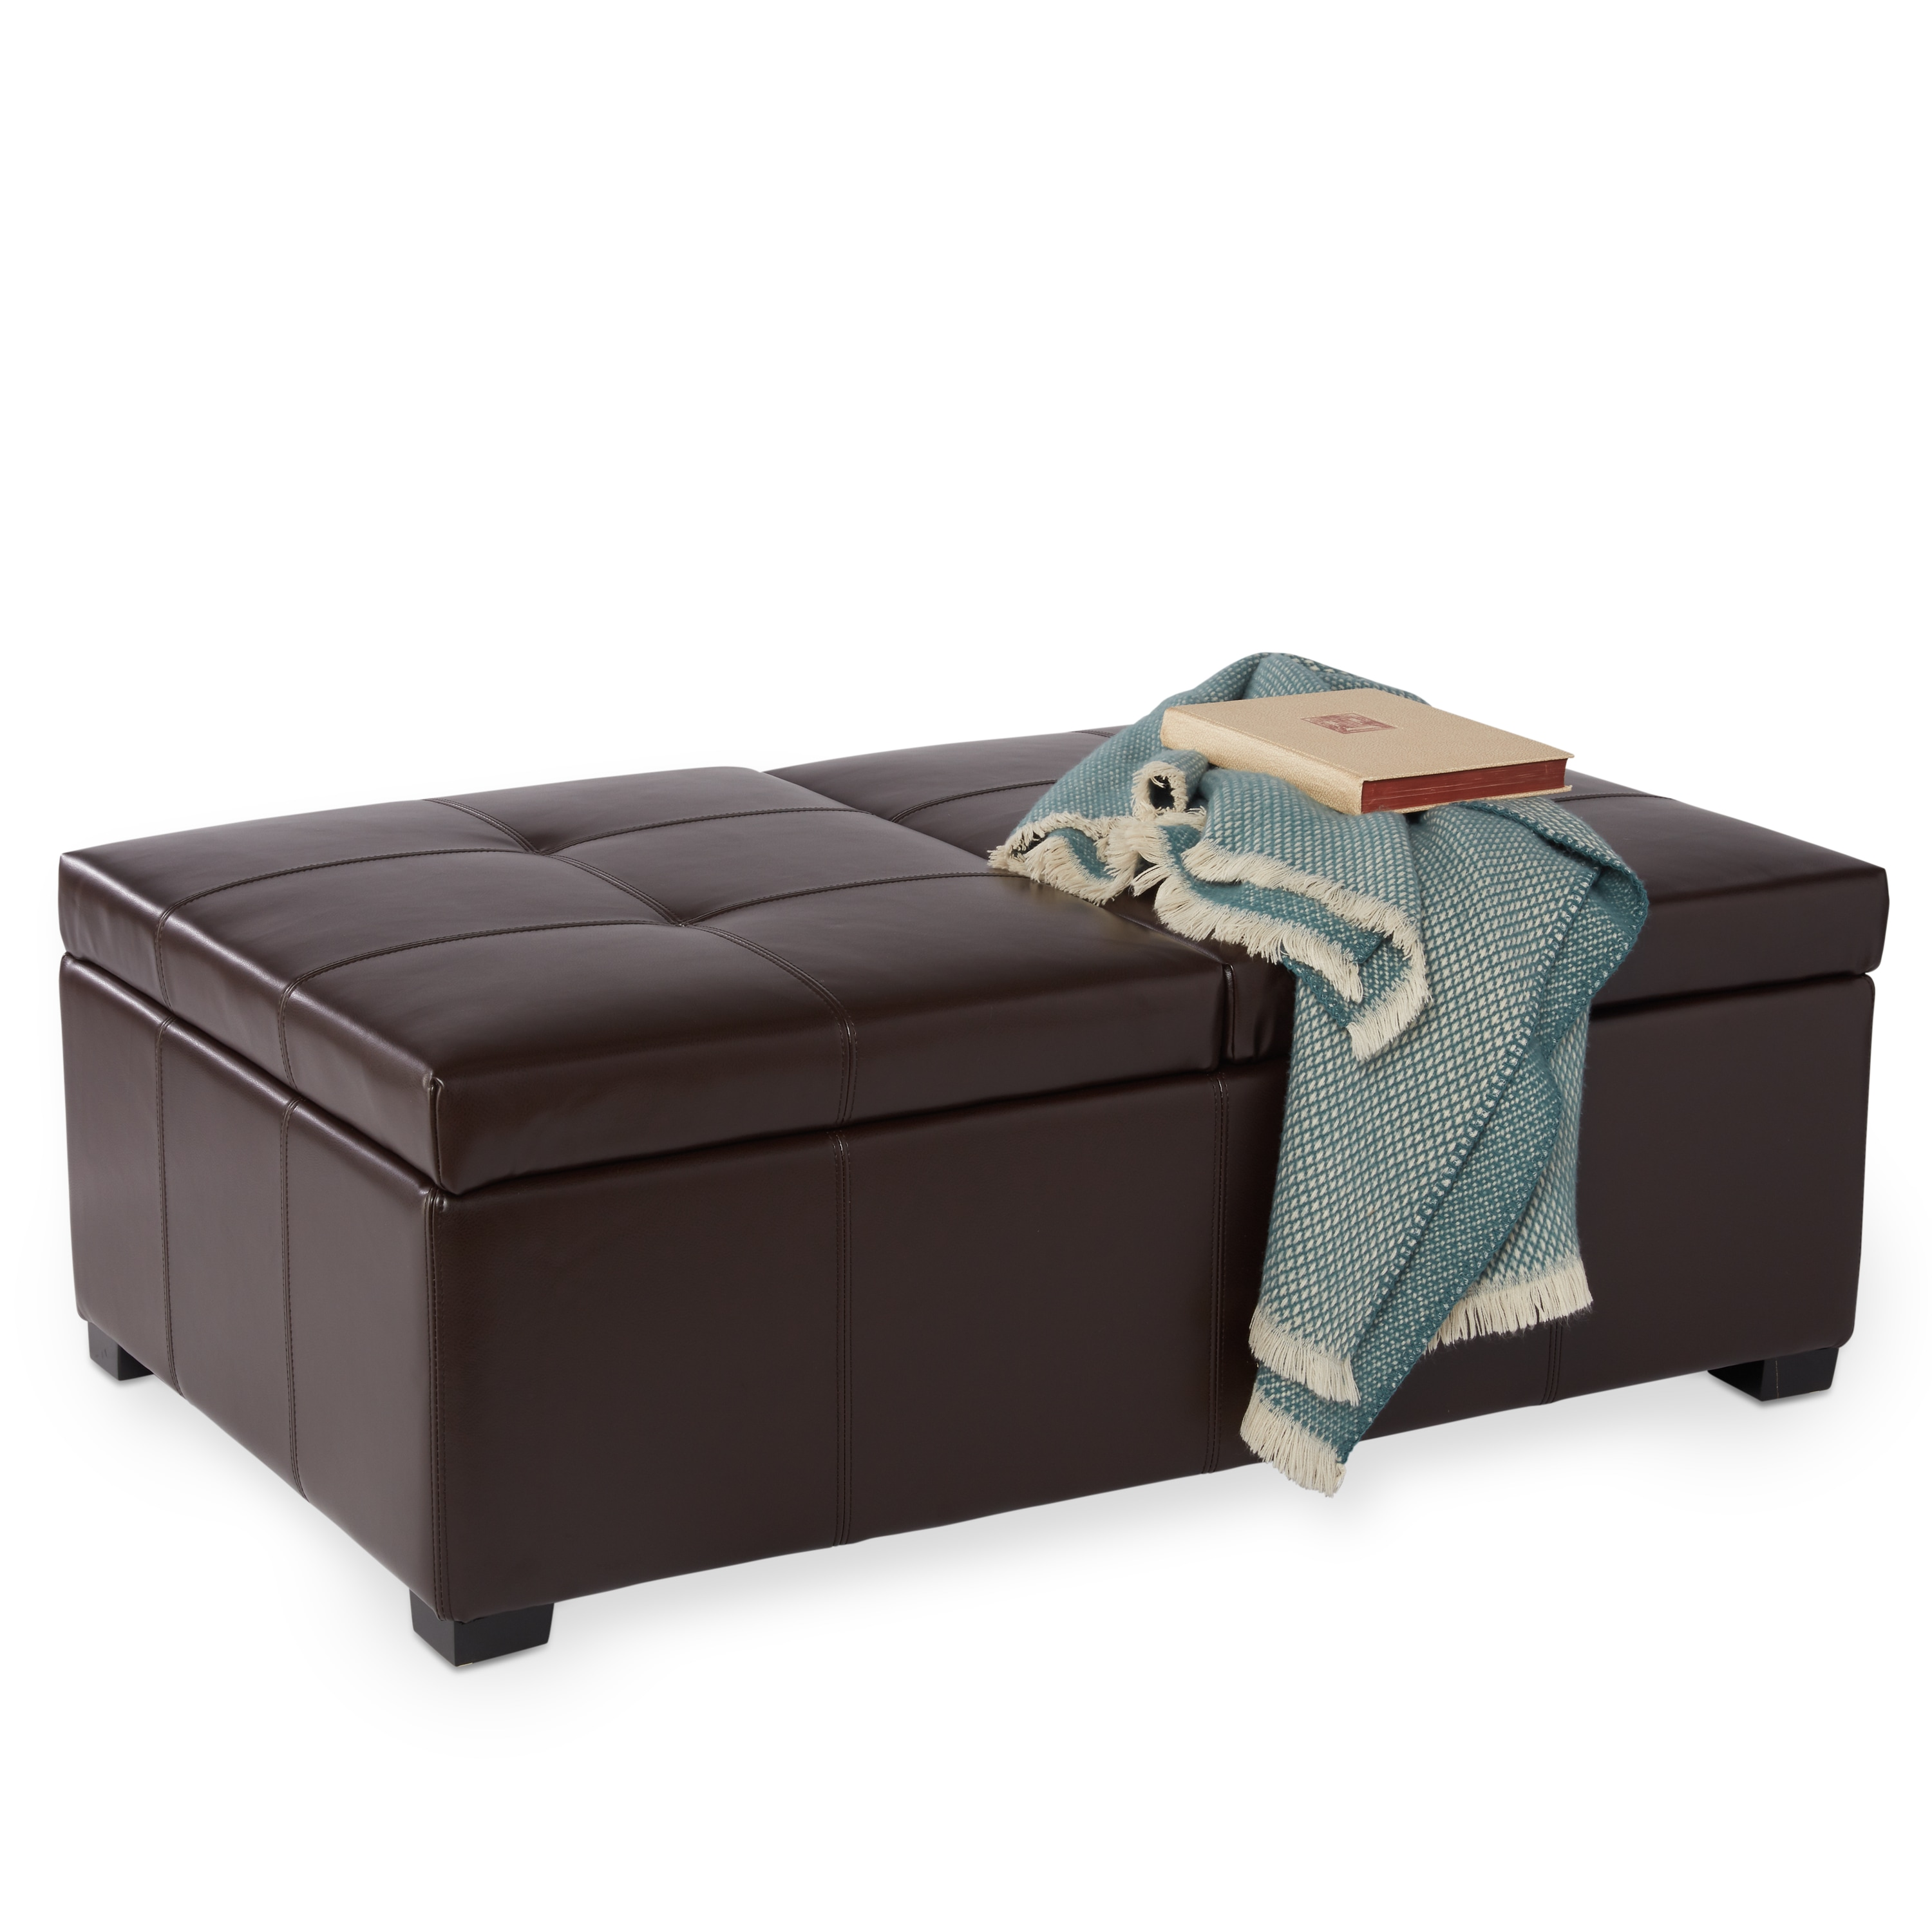 Shop Abbyson Frankfurt Dark Brown Leather Double Flip-top Storage Ottoman - On Sale - Free Shipping Today - Overstock.com - 6335502  sc 1 st  Overstock.com & Shop Abbyson Frankfurt Dark Brown Leather Double Flip-top Storage ...